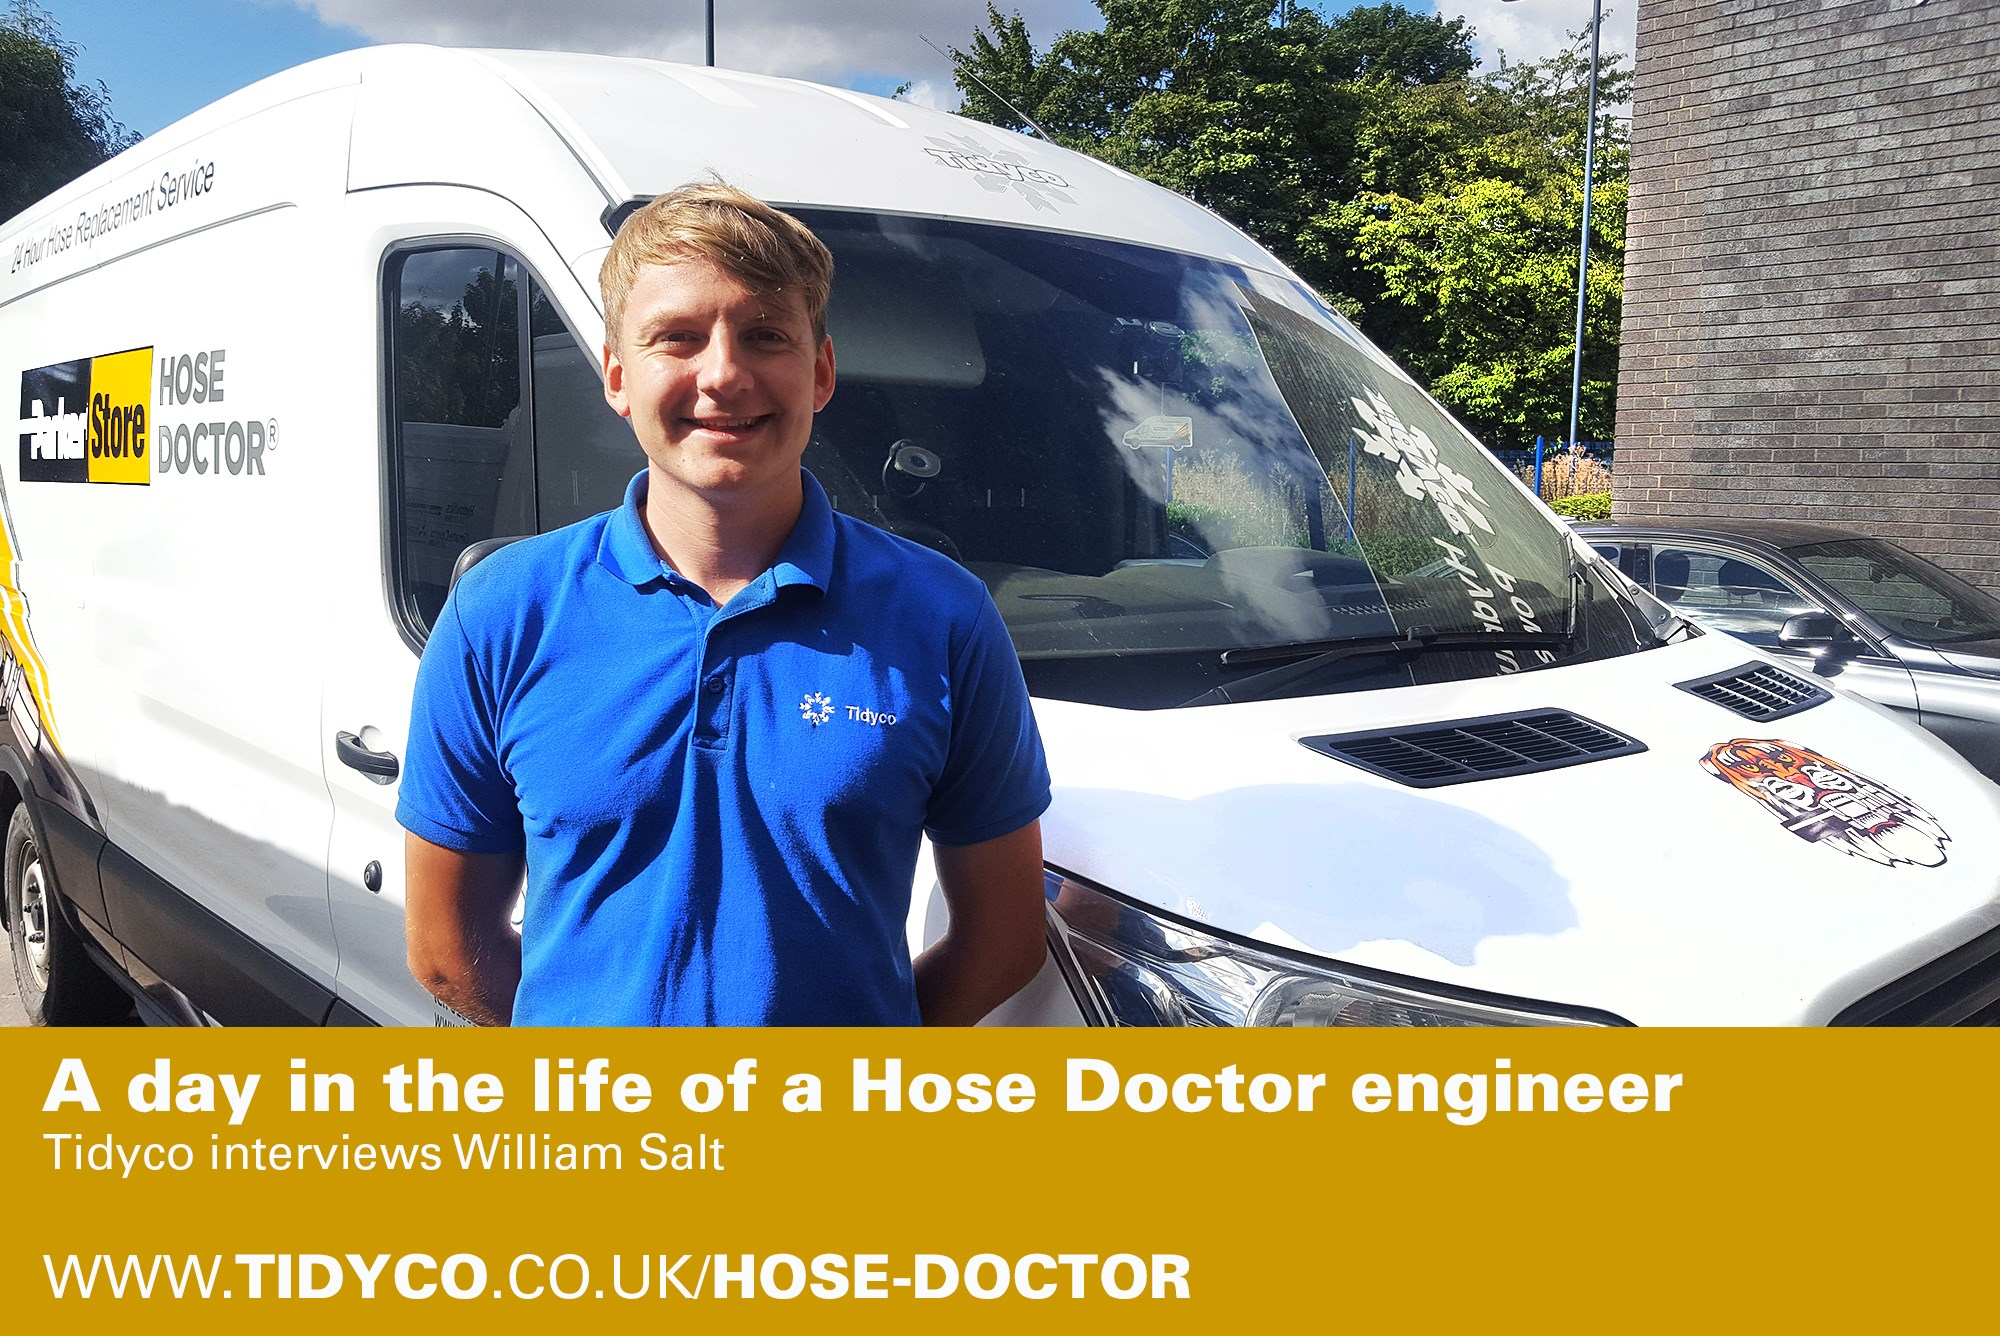 A day in the life of a Hose Docter Engineer - William Salt